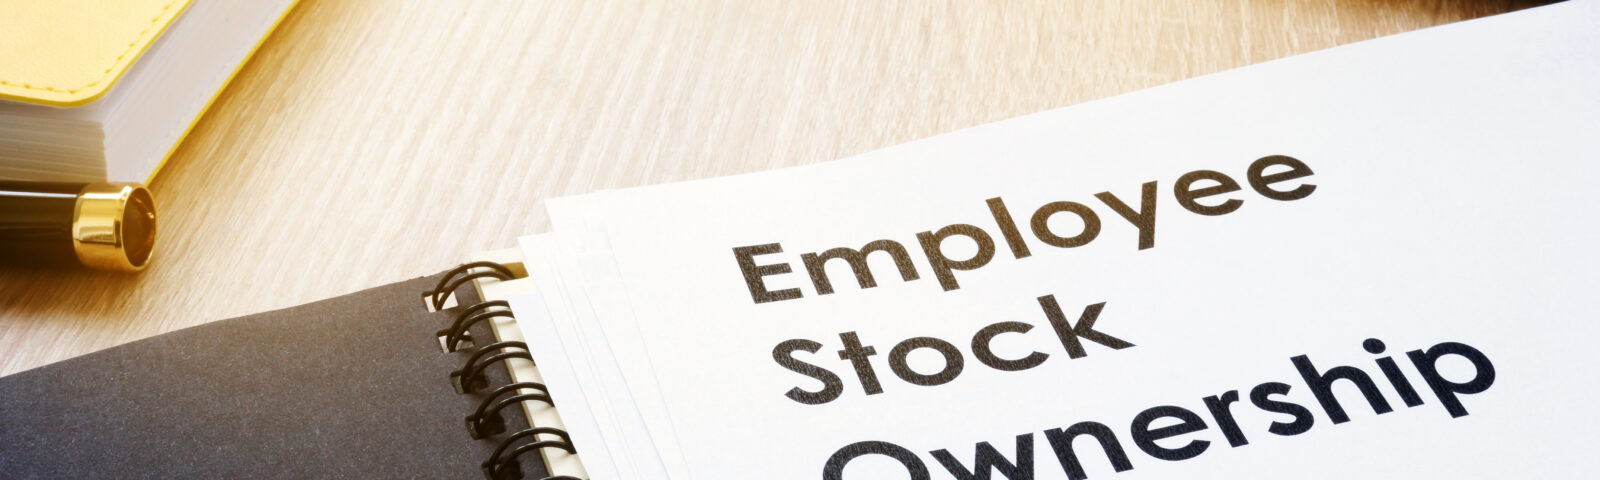 On (Employees) Stock Options and Divorces